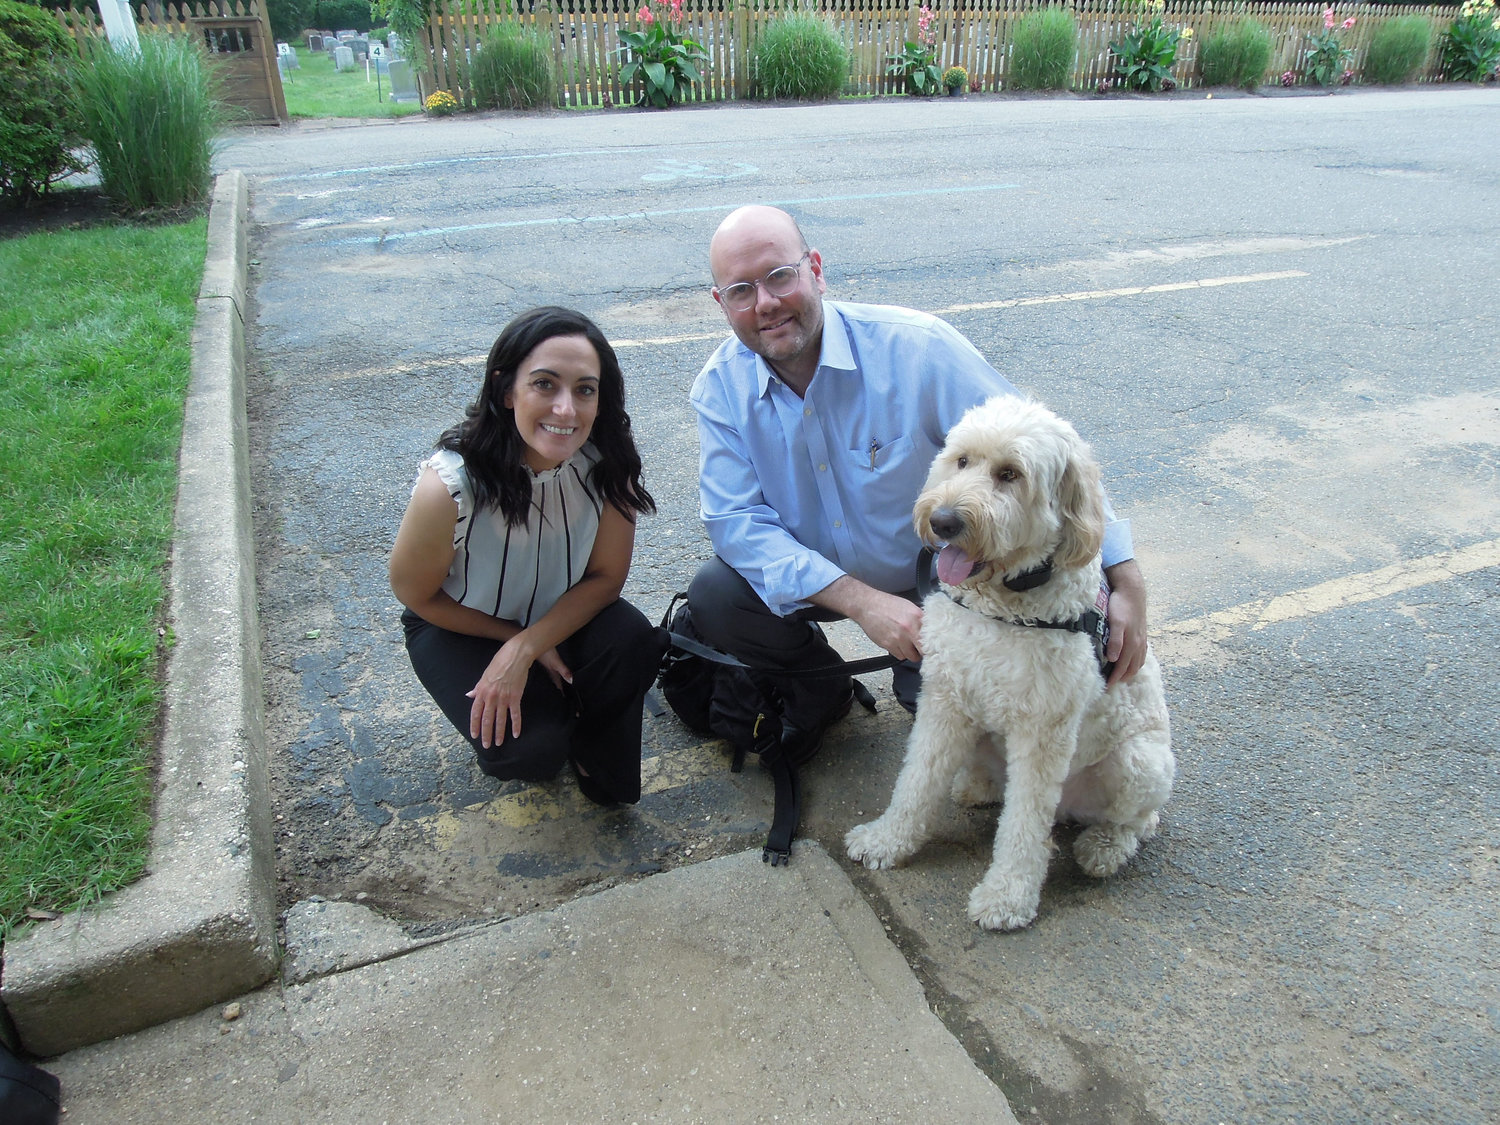 Comforted Companions pet hospice founder Dr. Alexis Tishler, left, with Jaime Hazan and his service dog, Bernie.